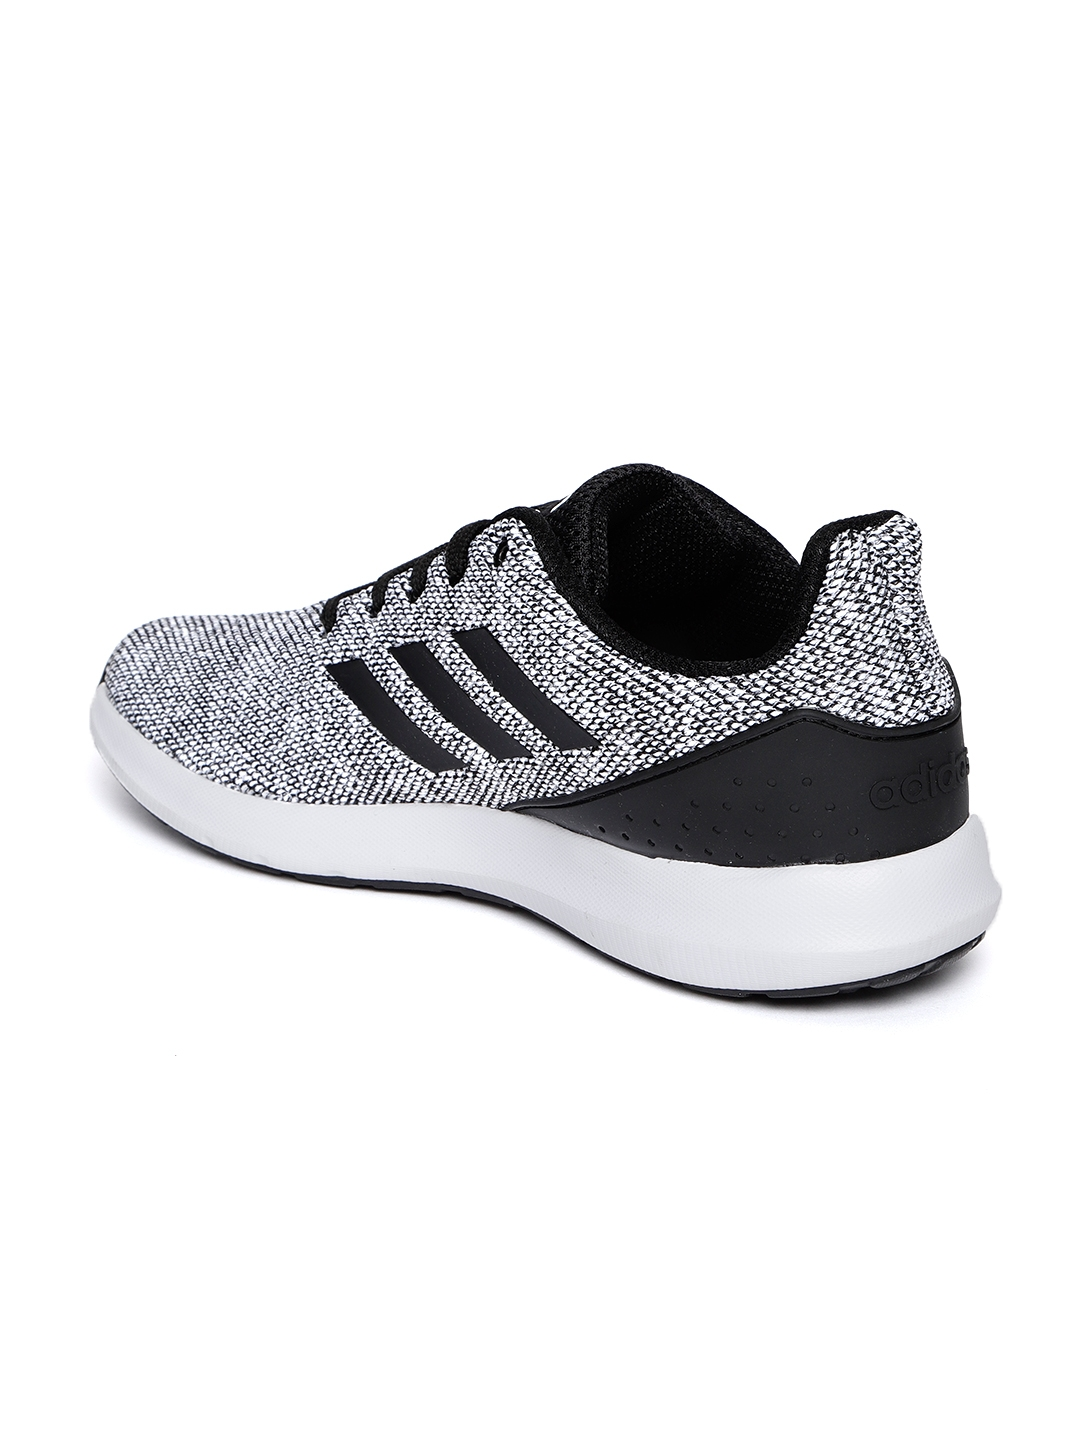 1337d26aadf Buy ADIDAS Men Black   White RADDIS 1.0 Running Shoes - Sports Shoes ...